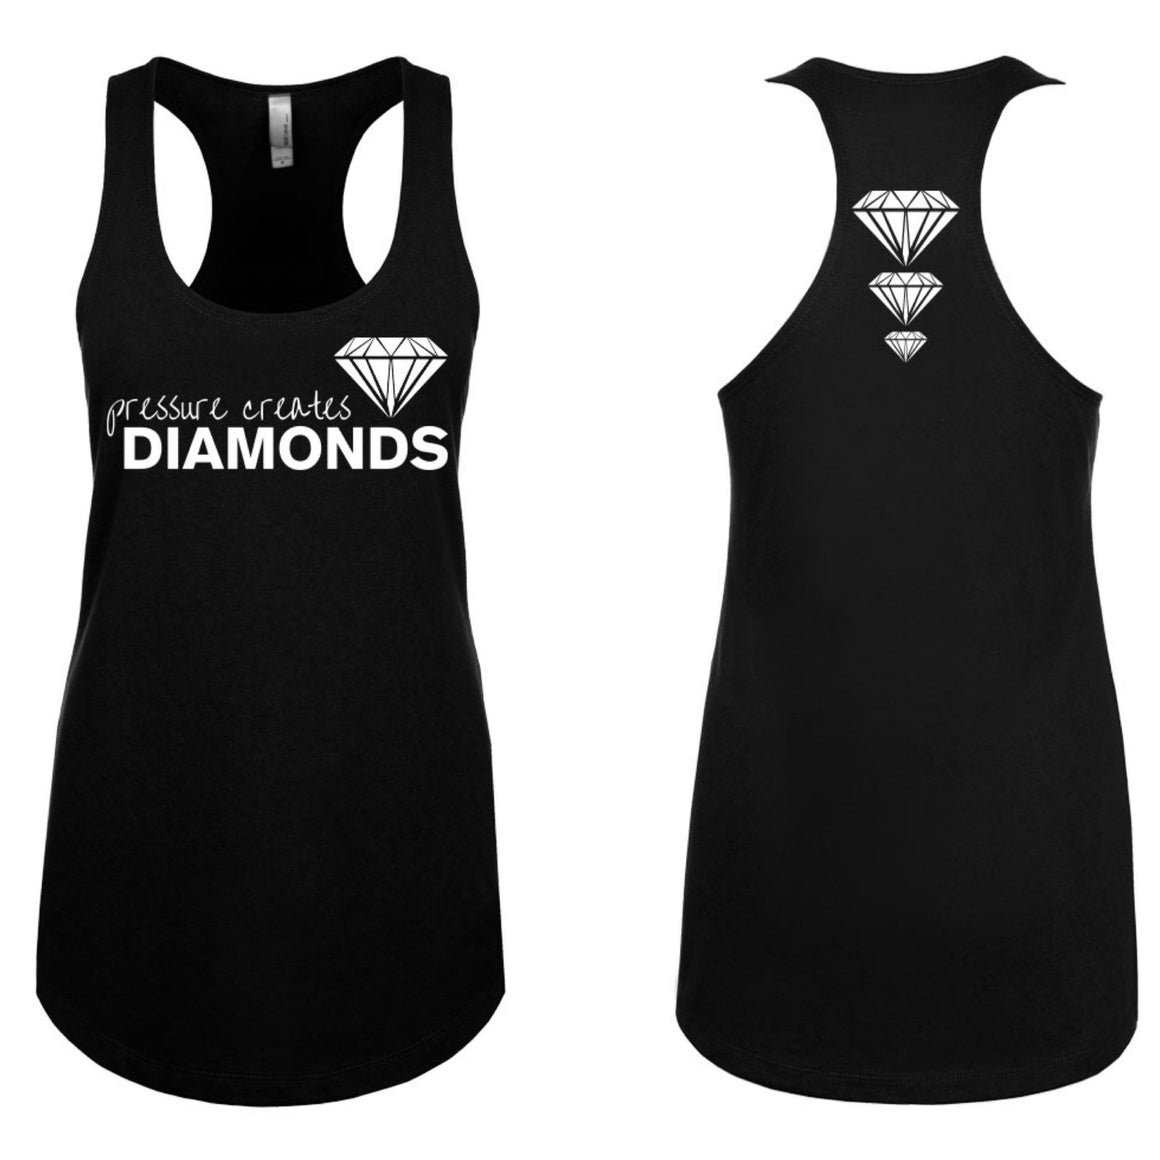 Pressure Creates Diamonds Tanktop- Black - FitGirls_inspire - 4